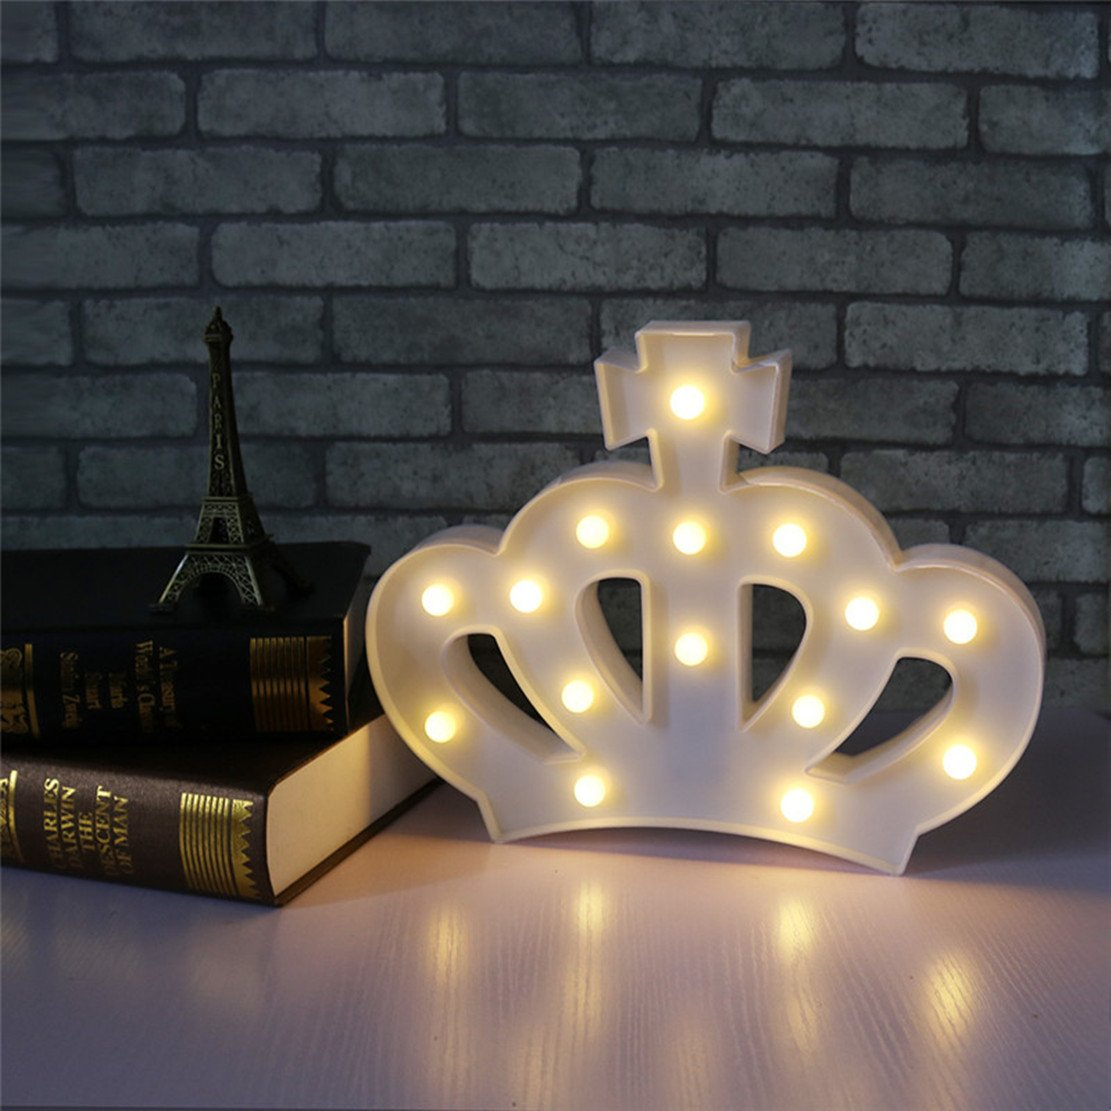 QiaoFei 3D Crown Marquee Sign Light,LED Queen Princess Kings Shaped Sign-Lighted,Wall Decor for Chistmas,Birthday party,Kids Room, Living Room, Wedding Party Decor(White) by QiaoFei (Image #3)